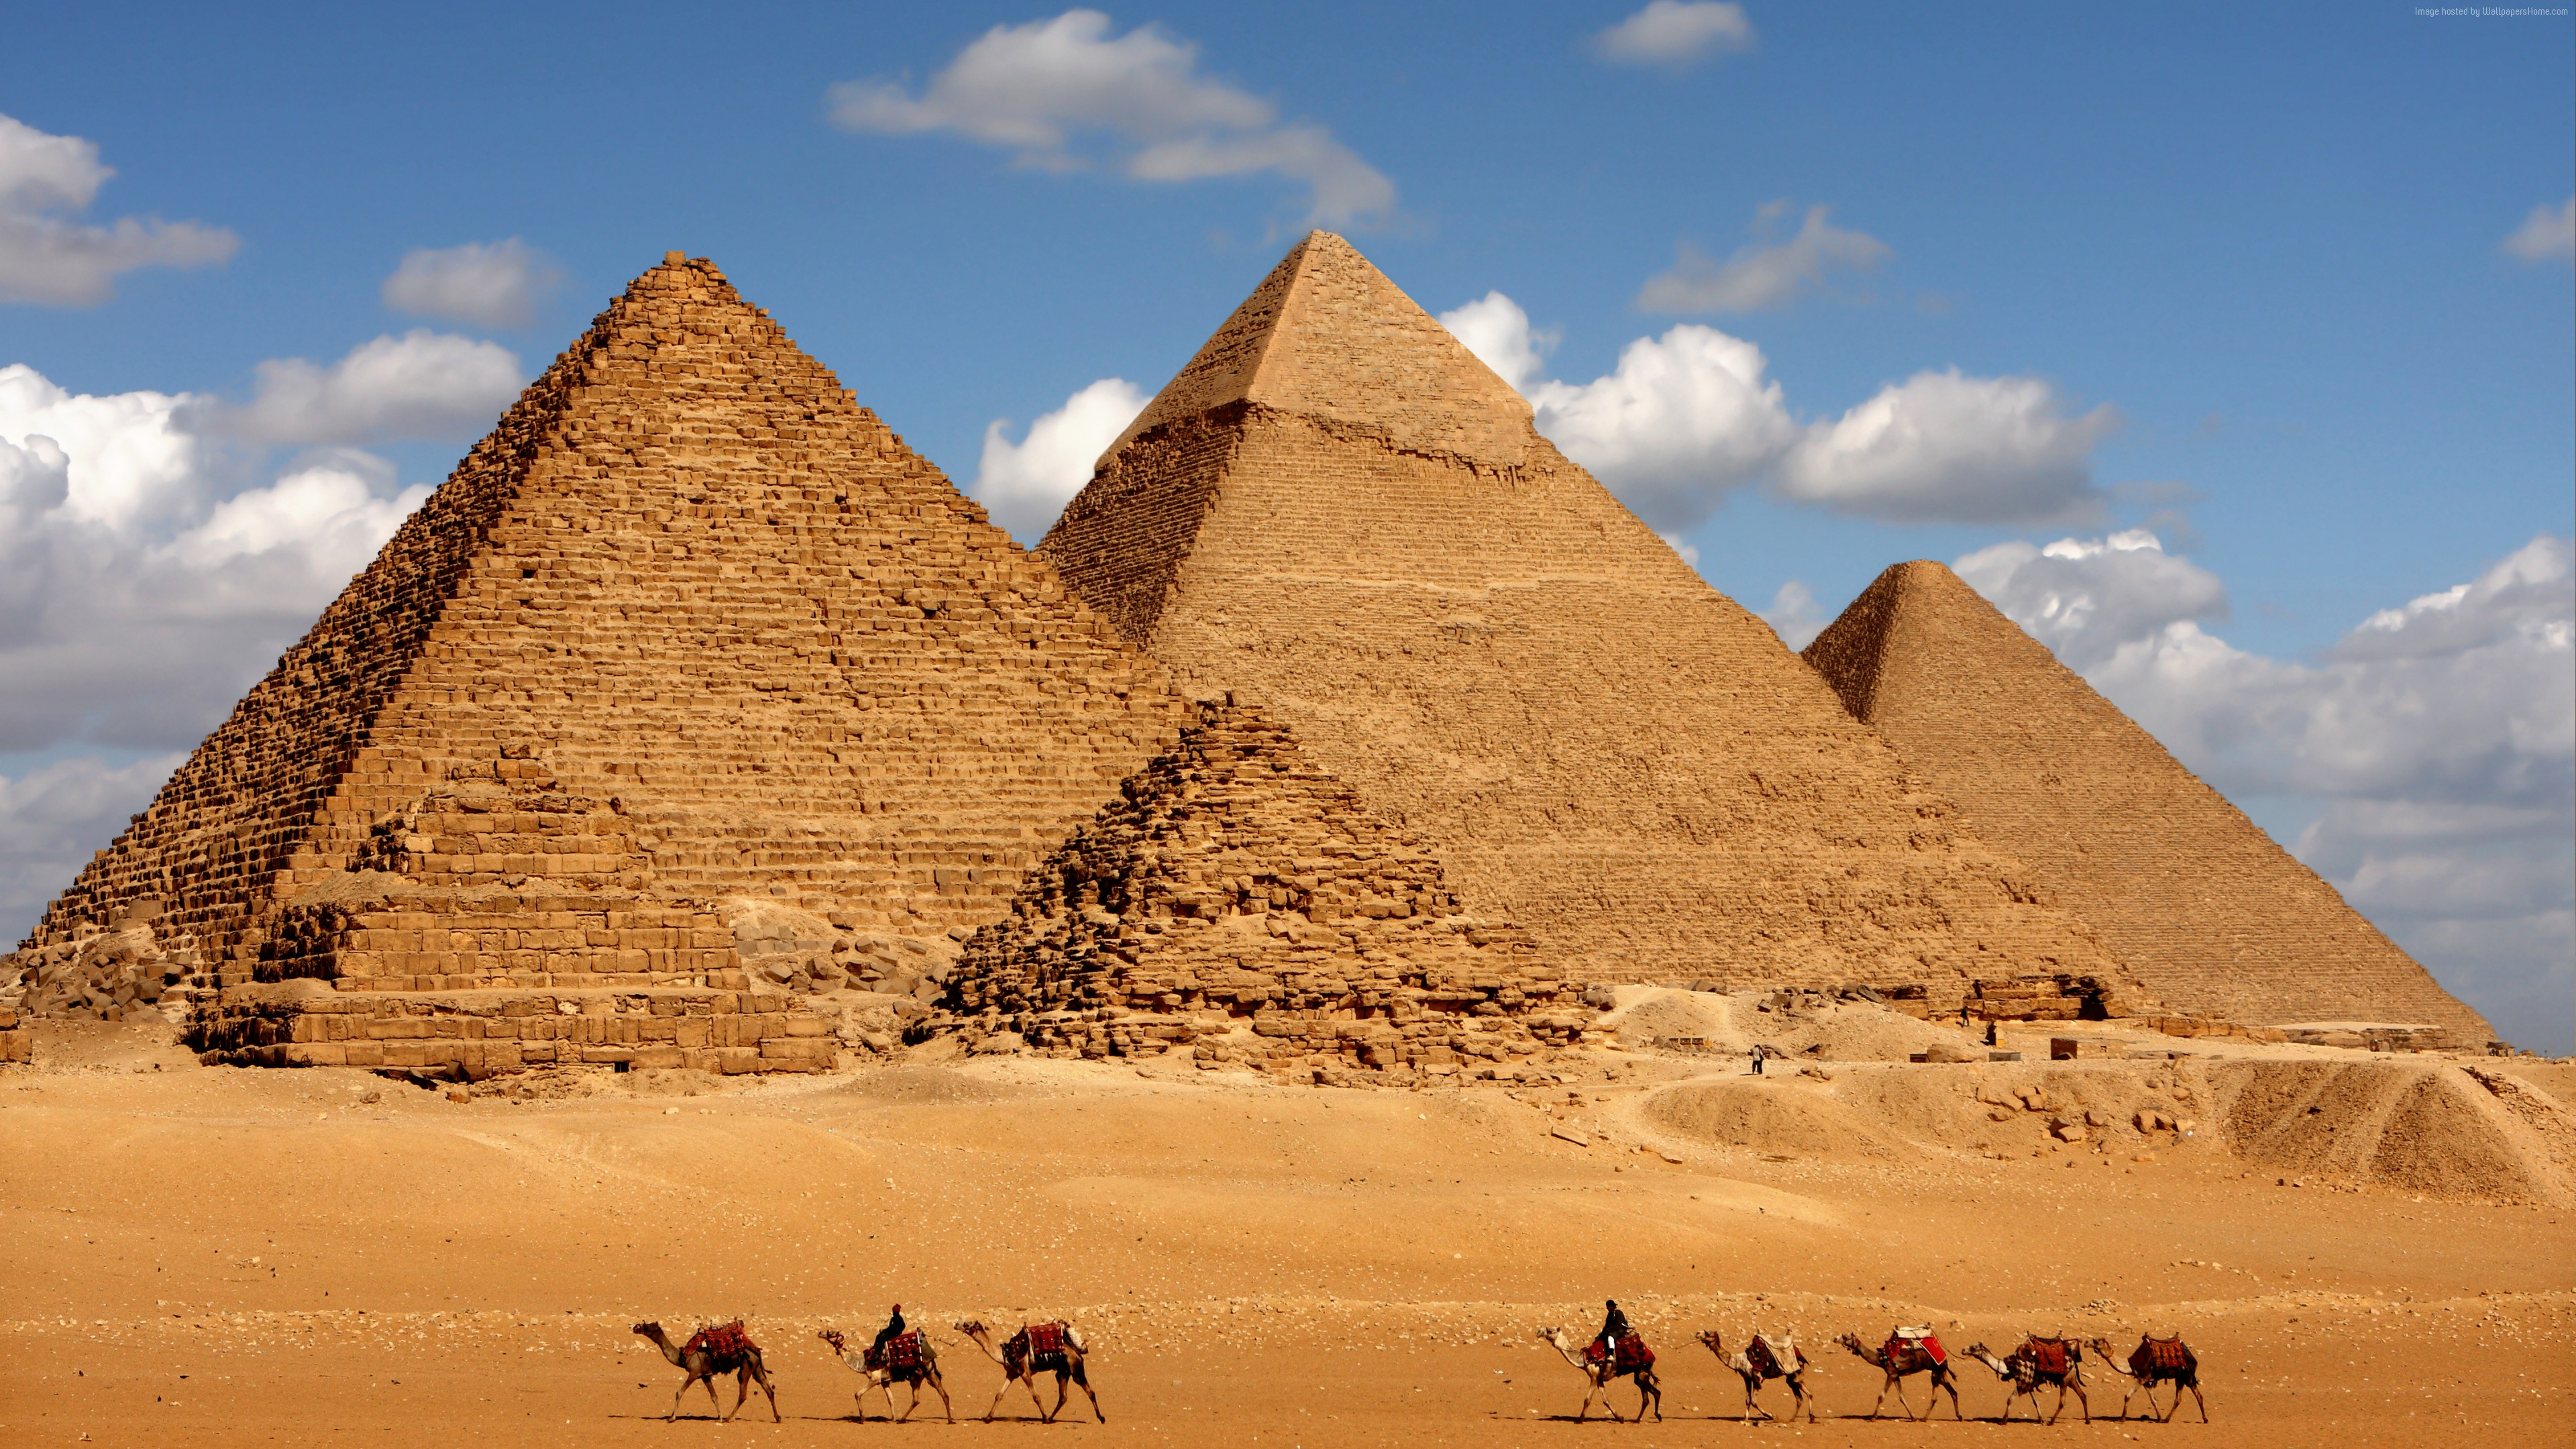 Wallpaper Egypt, pyramid, camel, 8k, Travel